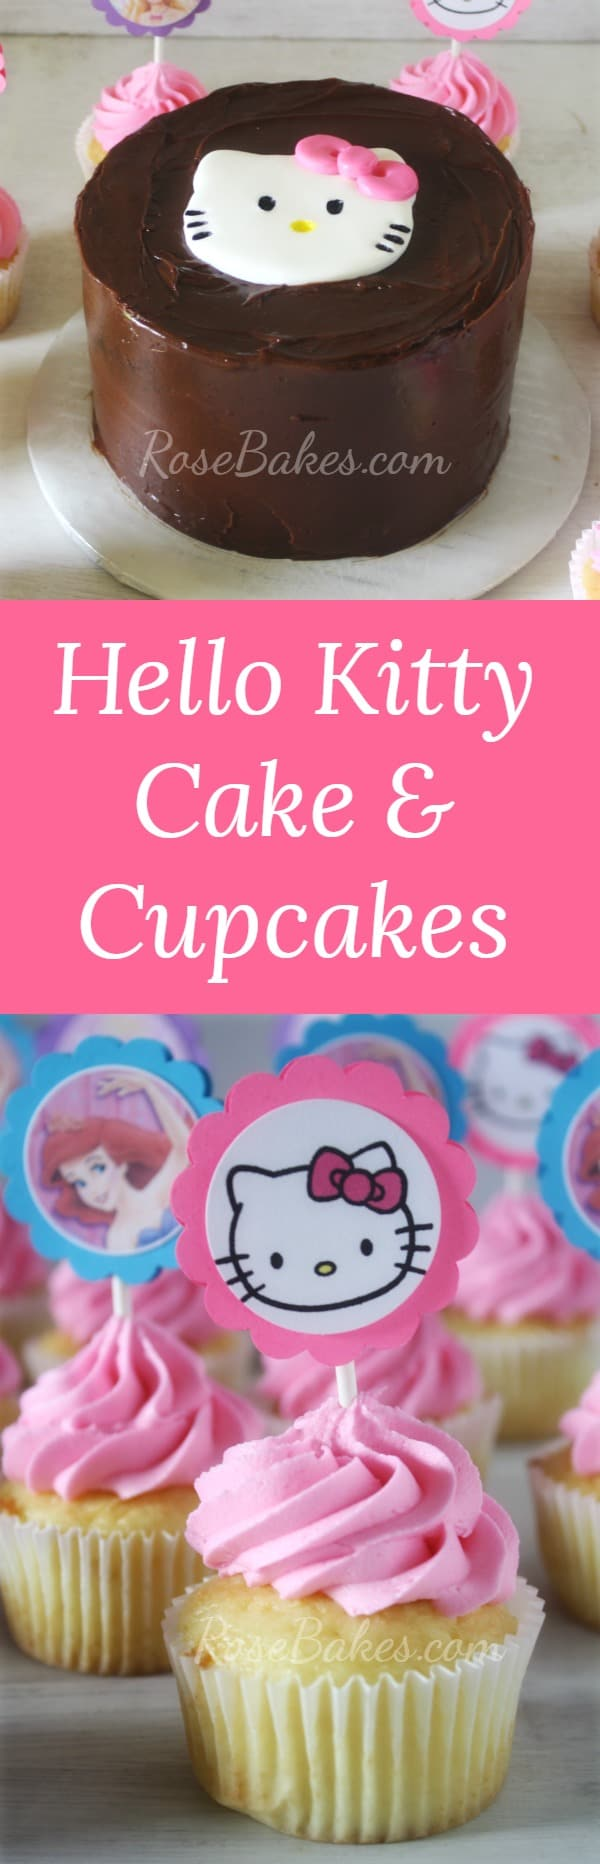 Hello Kitty Cake & Cupcakes